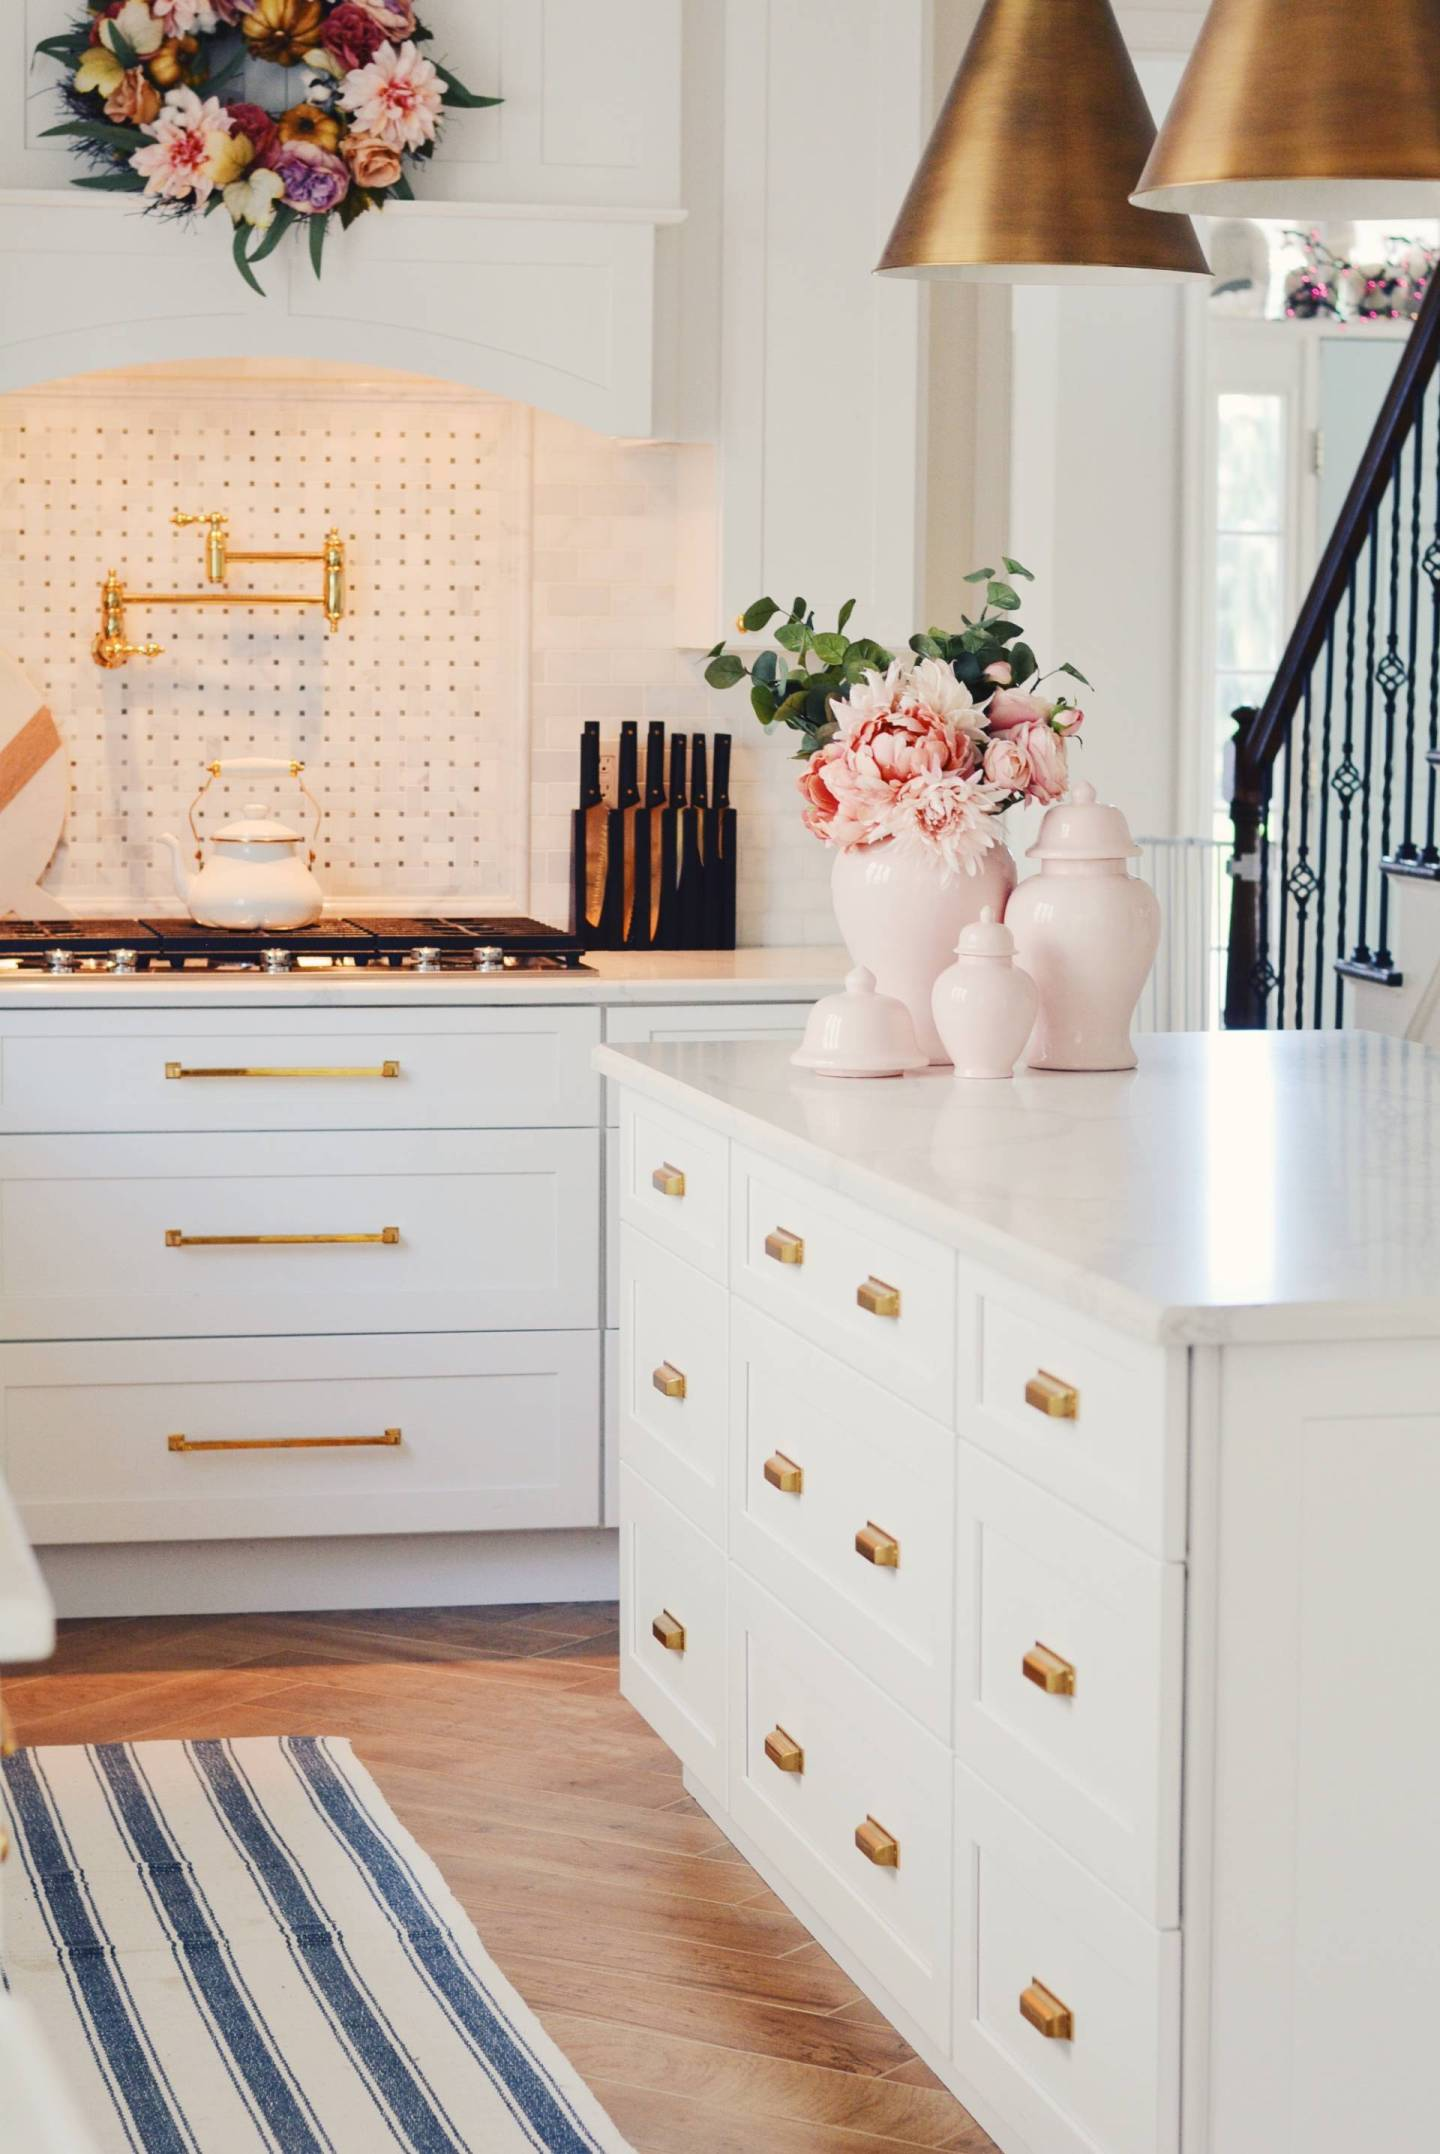 Our Kitchen Renovation Cost Breakdown + Where to Save ...